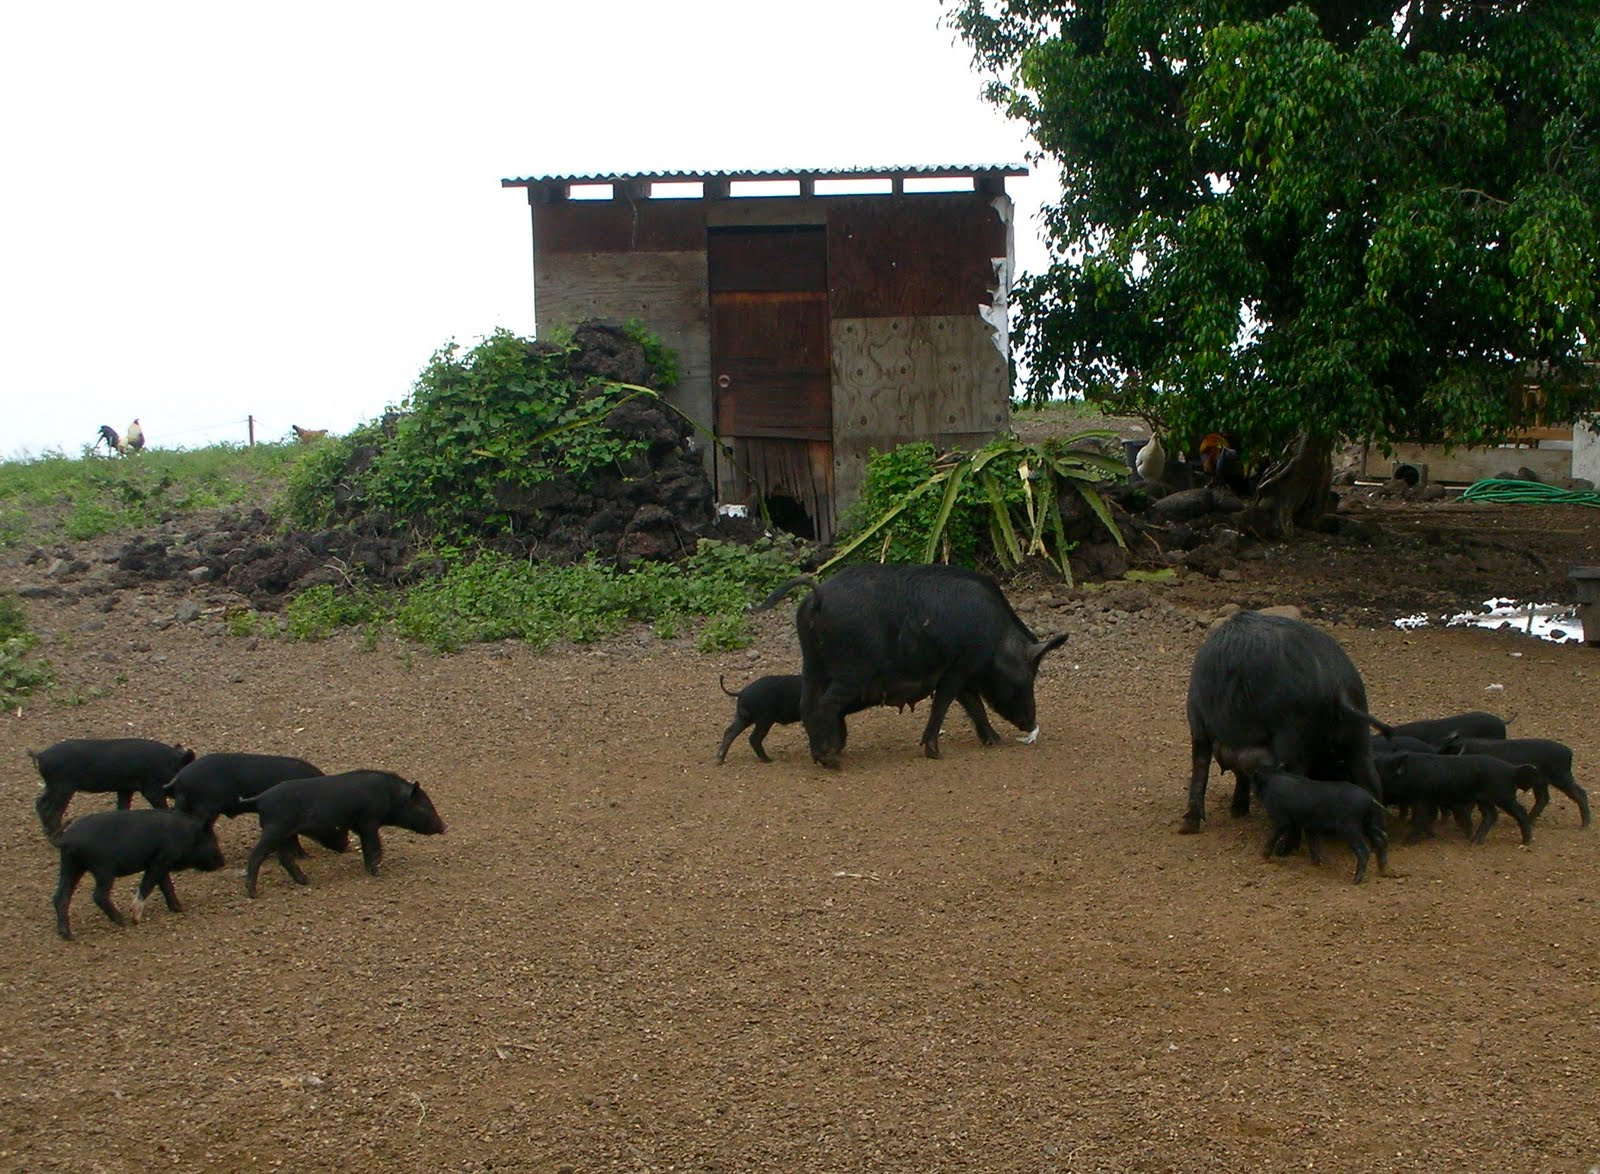 ... and piglets I had the pleasure of spotting while on vacation in Hawaii!